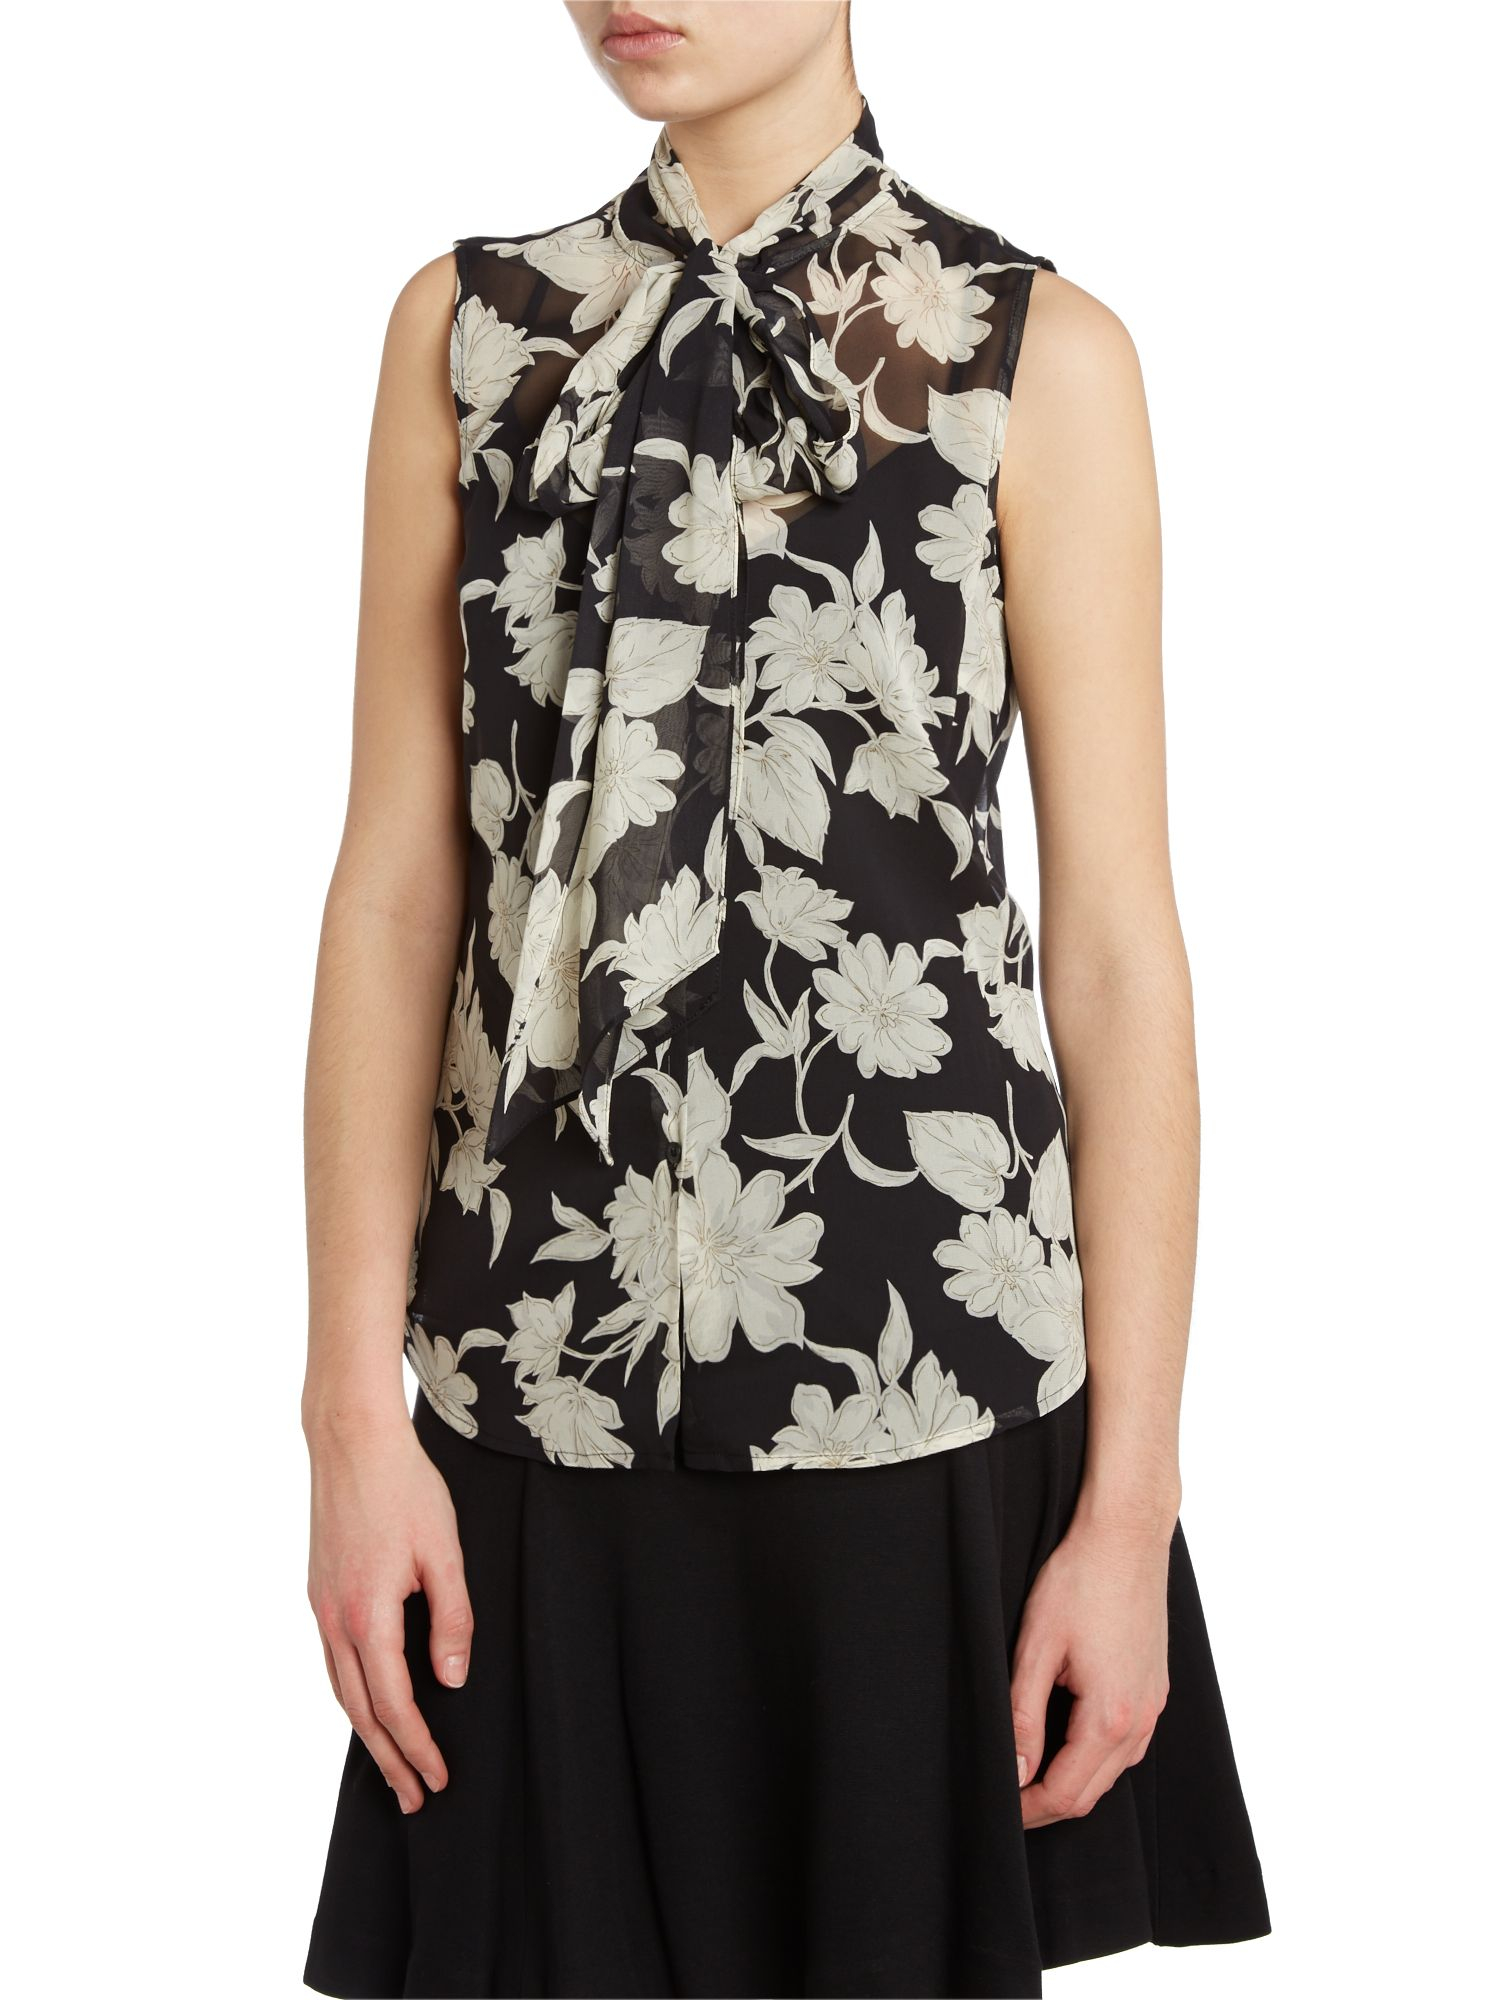 lauren by ralph lauren silk floral print blouse with tie neck in black lyst. Black Bedroom Furniture Sets. Home Design Ideas